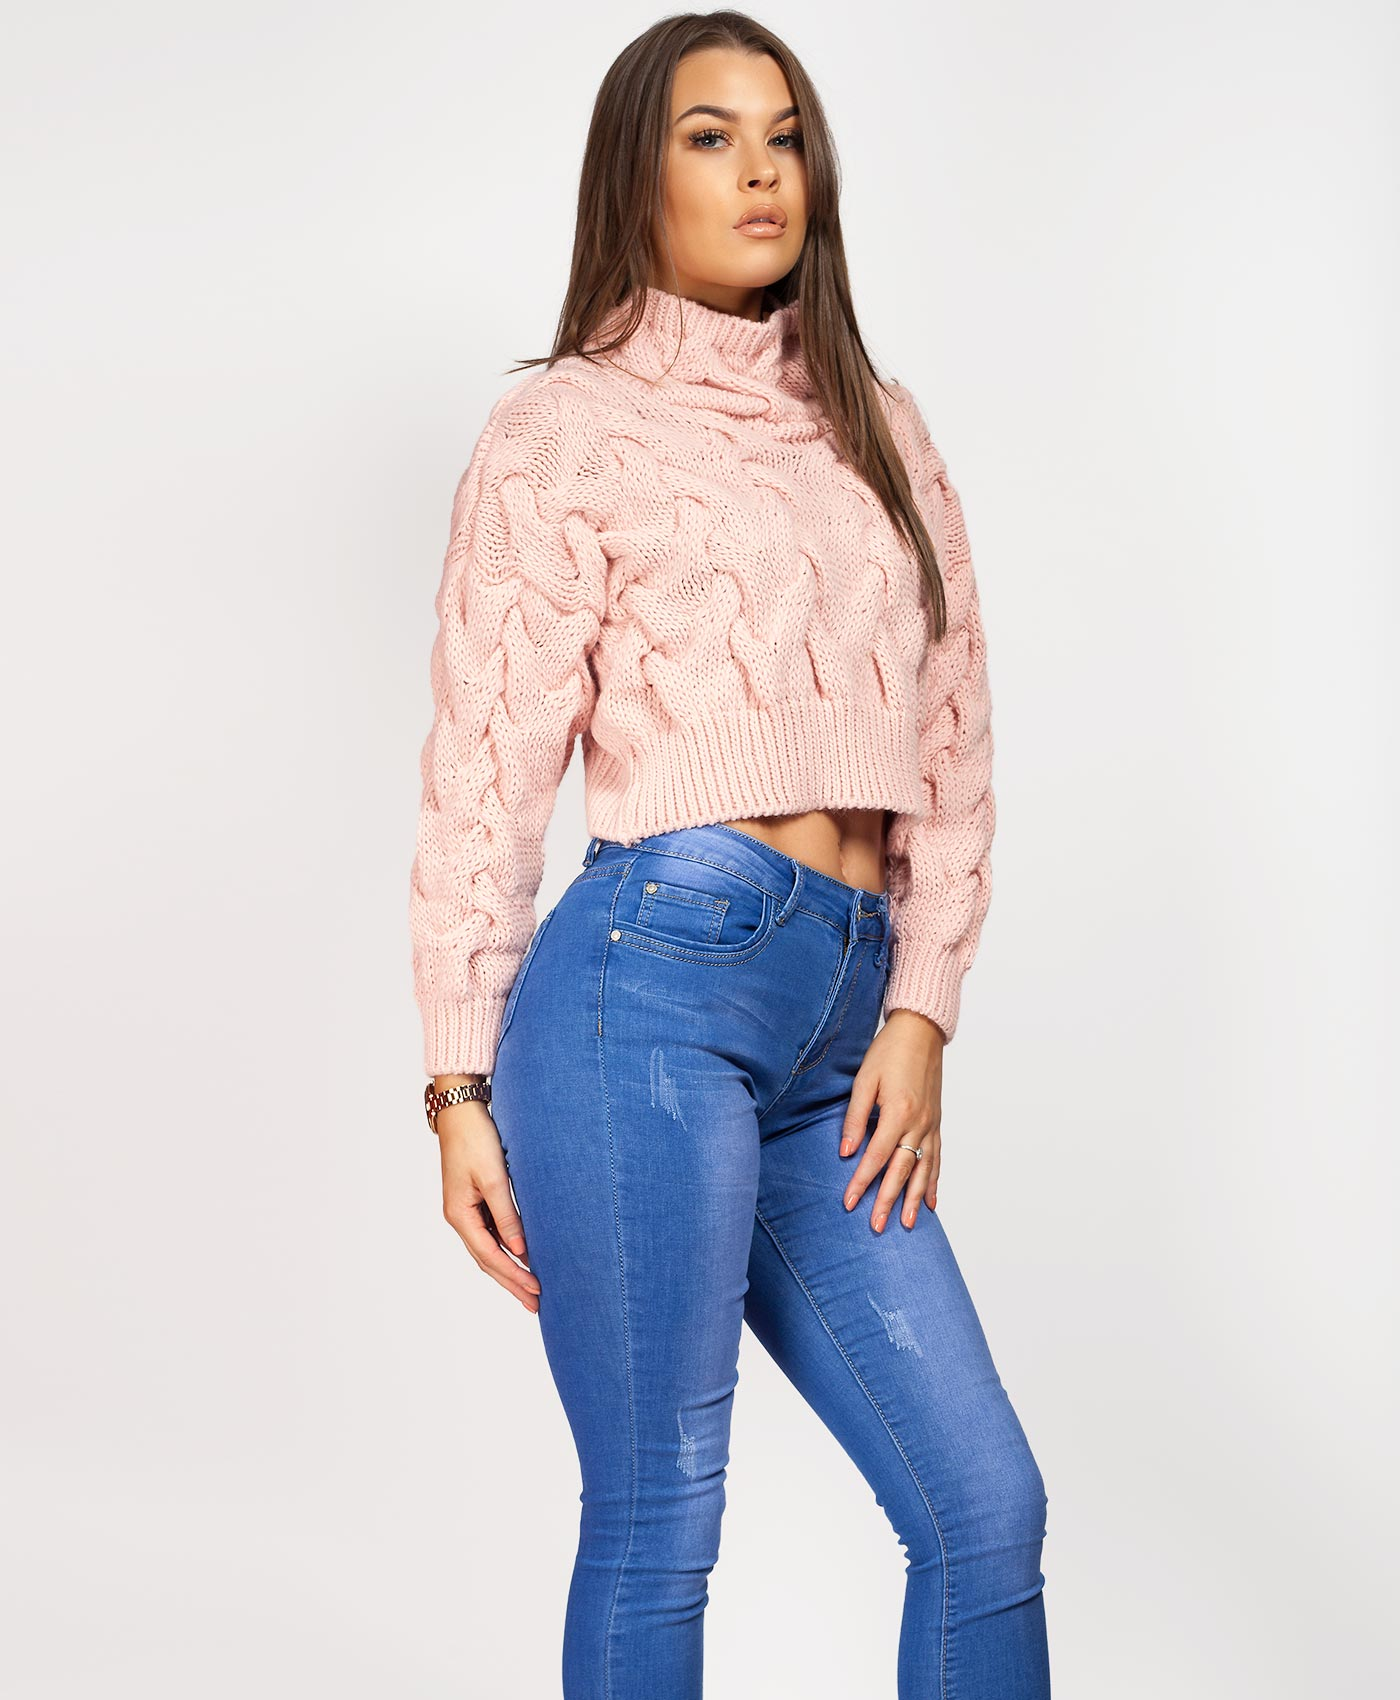 Womens-Ladies-Cable-Knitted-High-Neck-Cropped-Top-Pullover-Sweater-Chunky-Jumper thumbnail 34